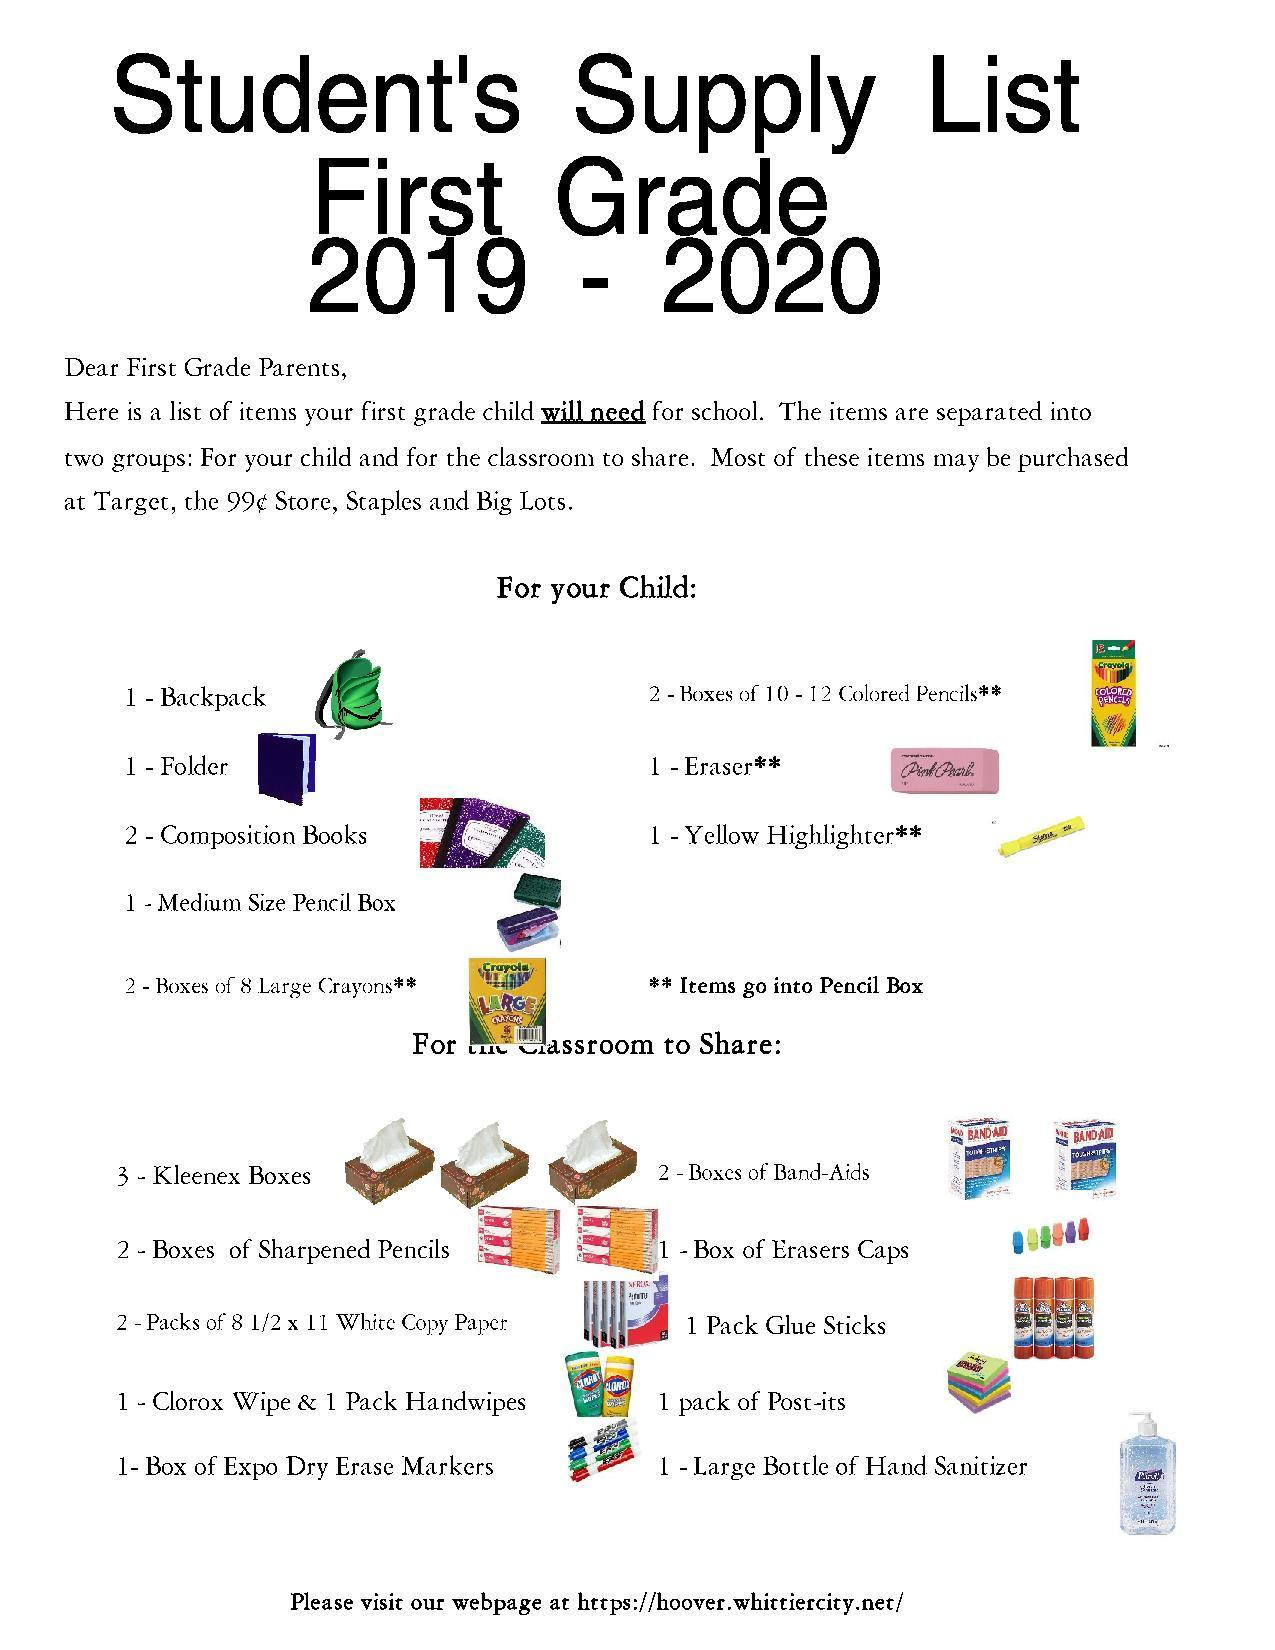 First Grade Supply List 2019-20 - English